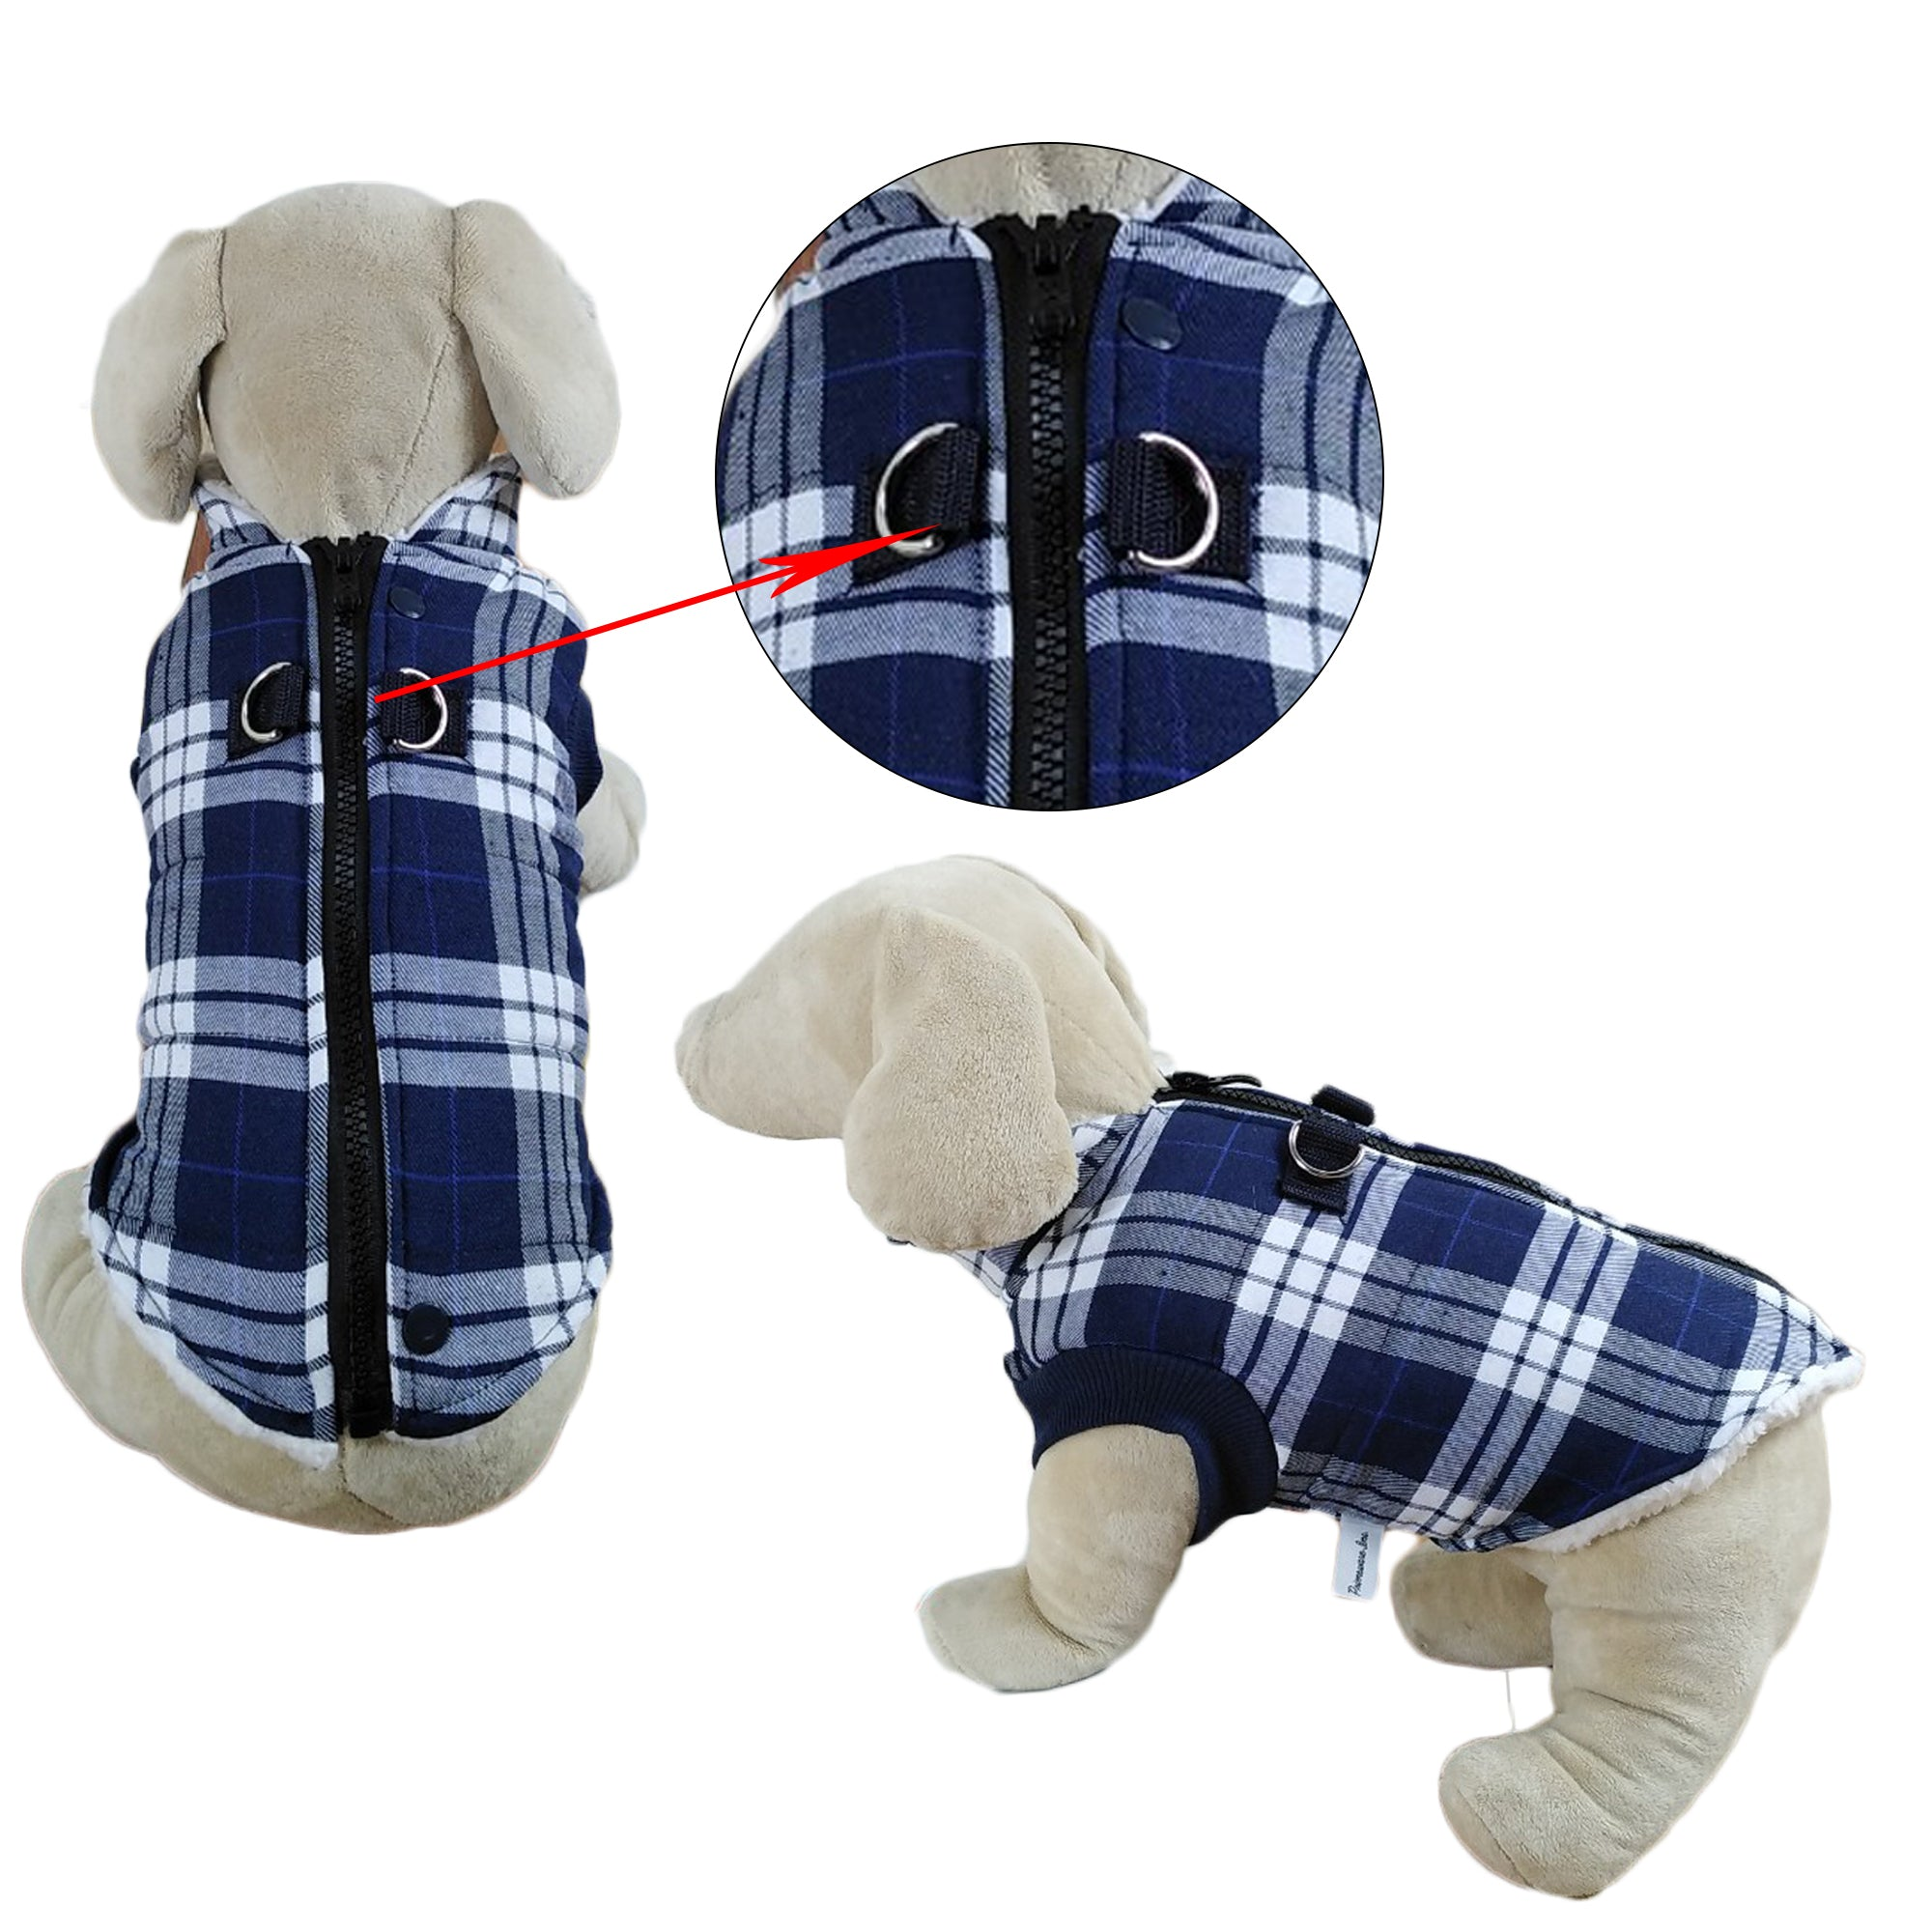 Winter Coat with Thick Fleece Zipper Closure and Leash Ring - primewareinc